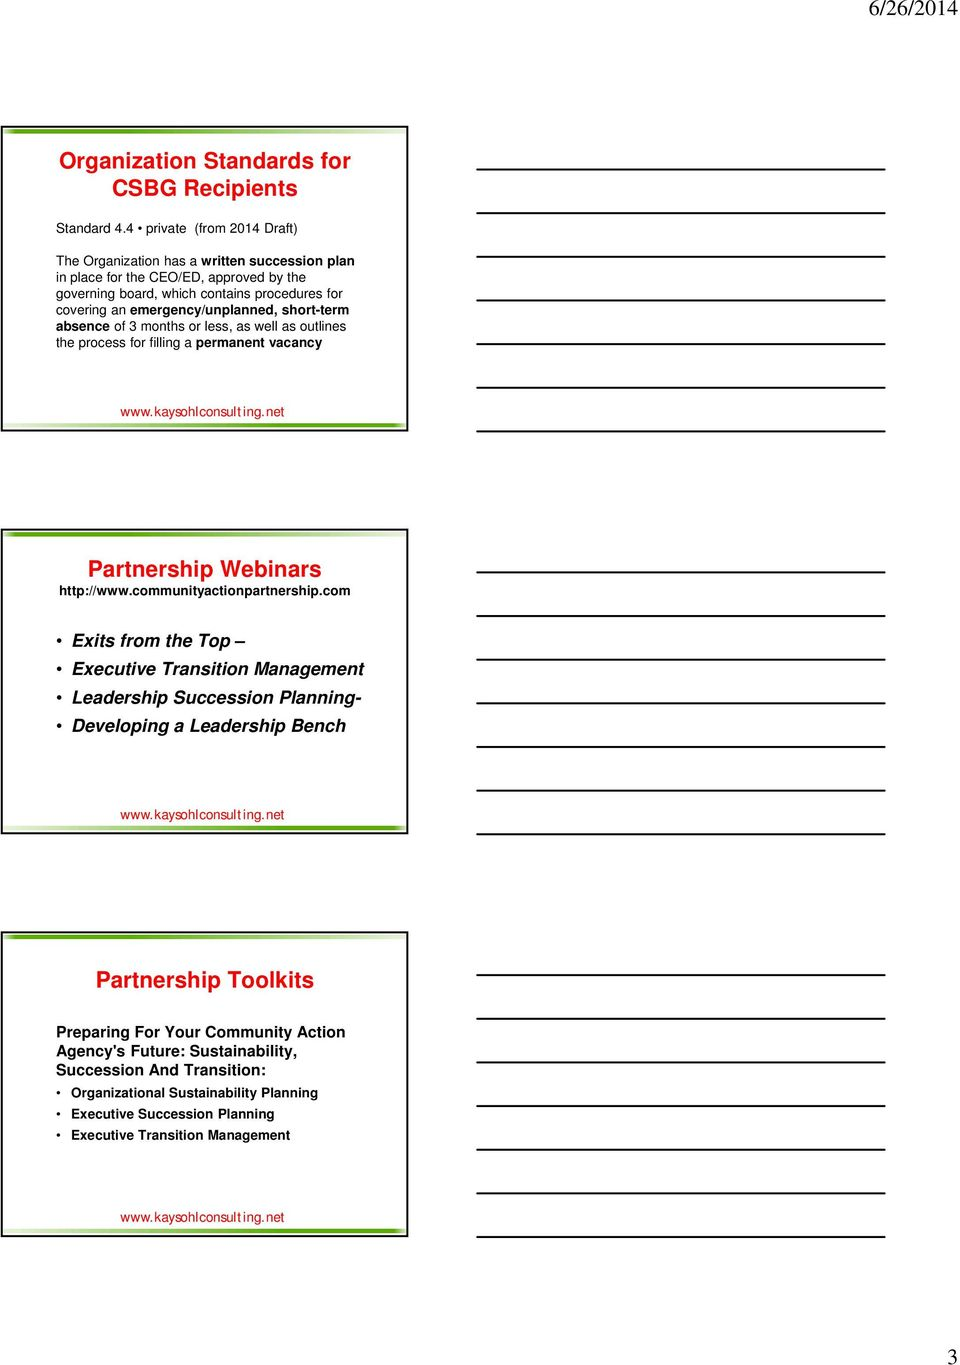 executive succession planning template - succession planning why talk about succession planning